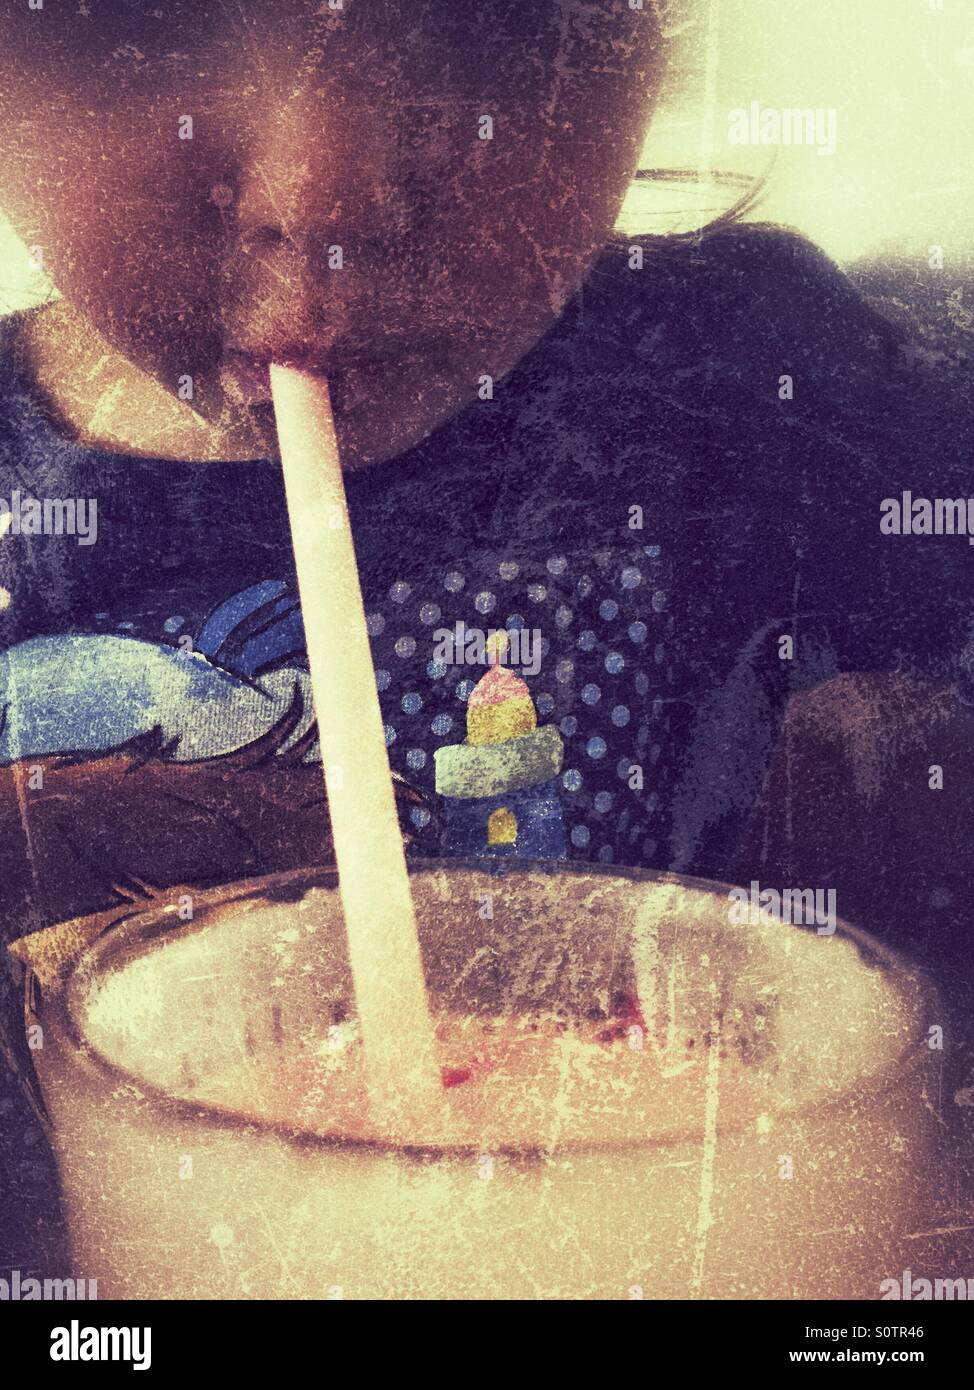 Drinking through a straw - Stock Image